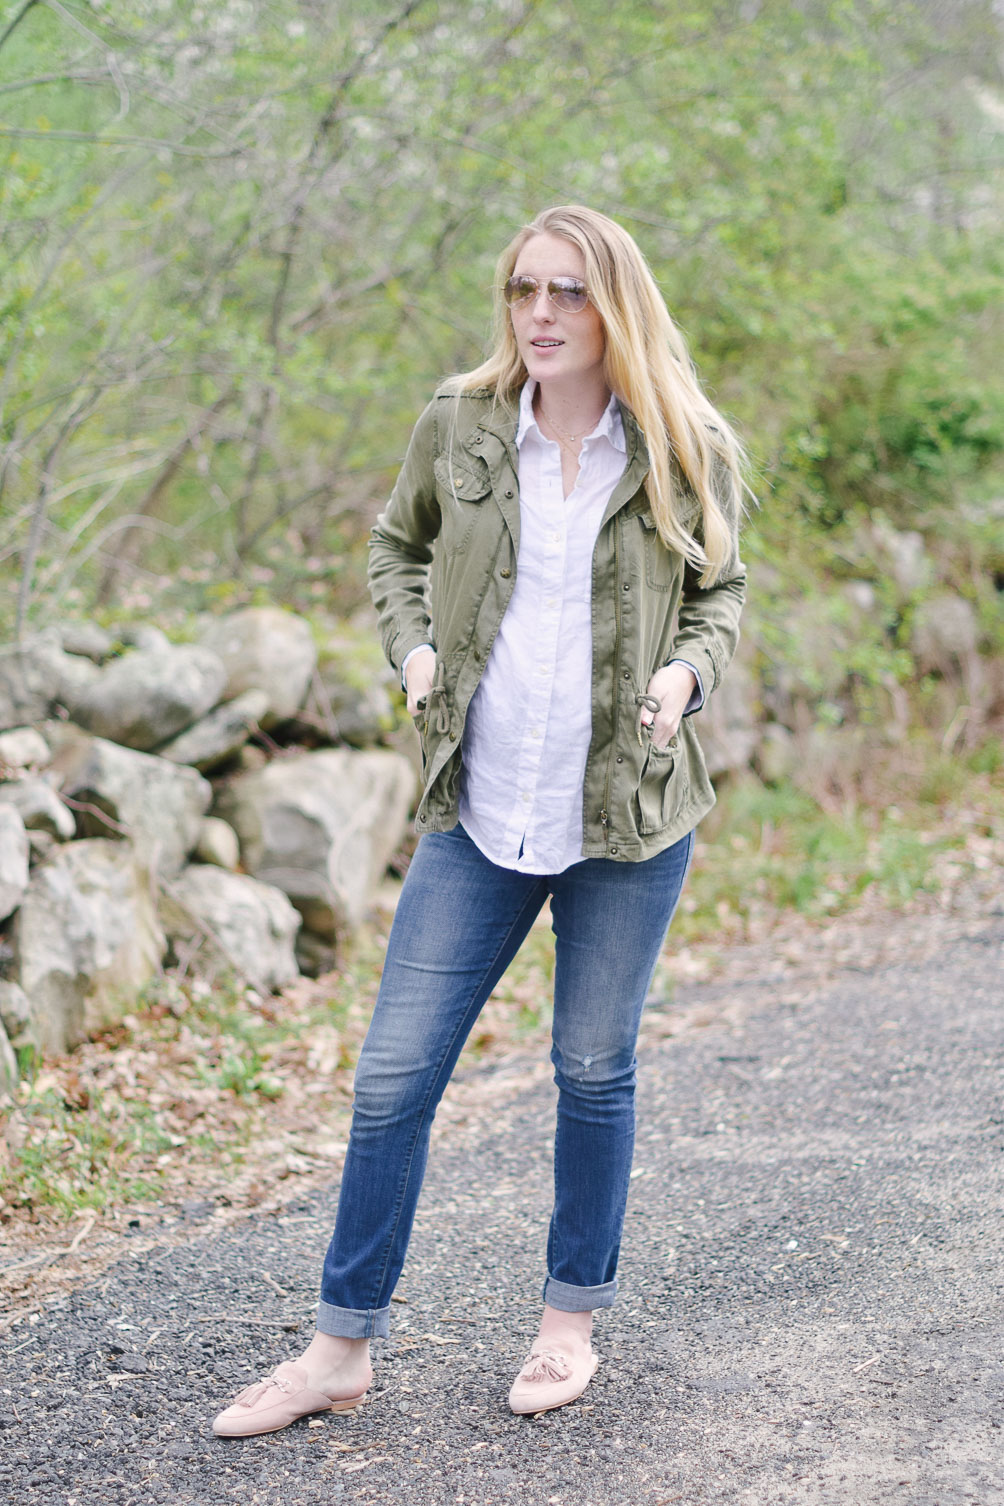 styling spring earth tones in this maternity fashion look